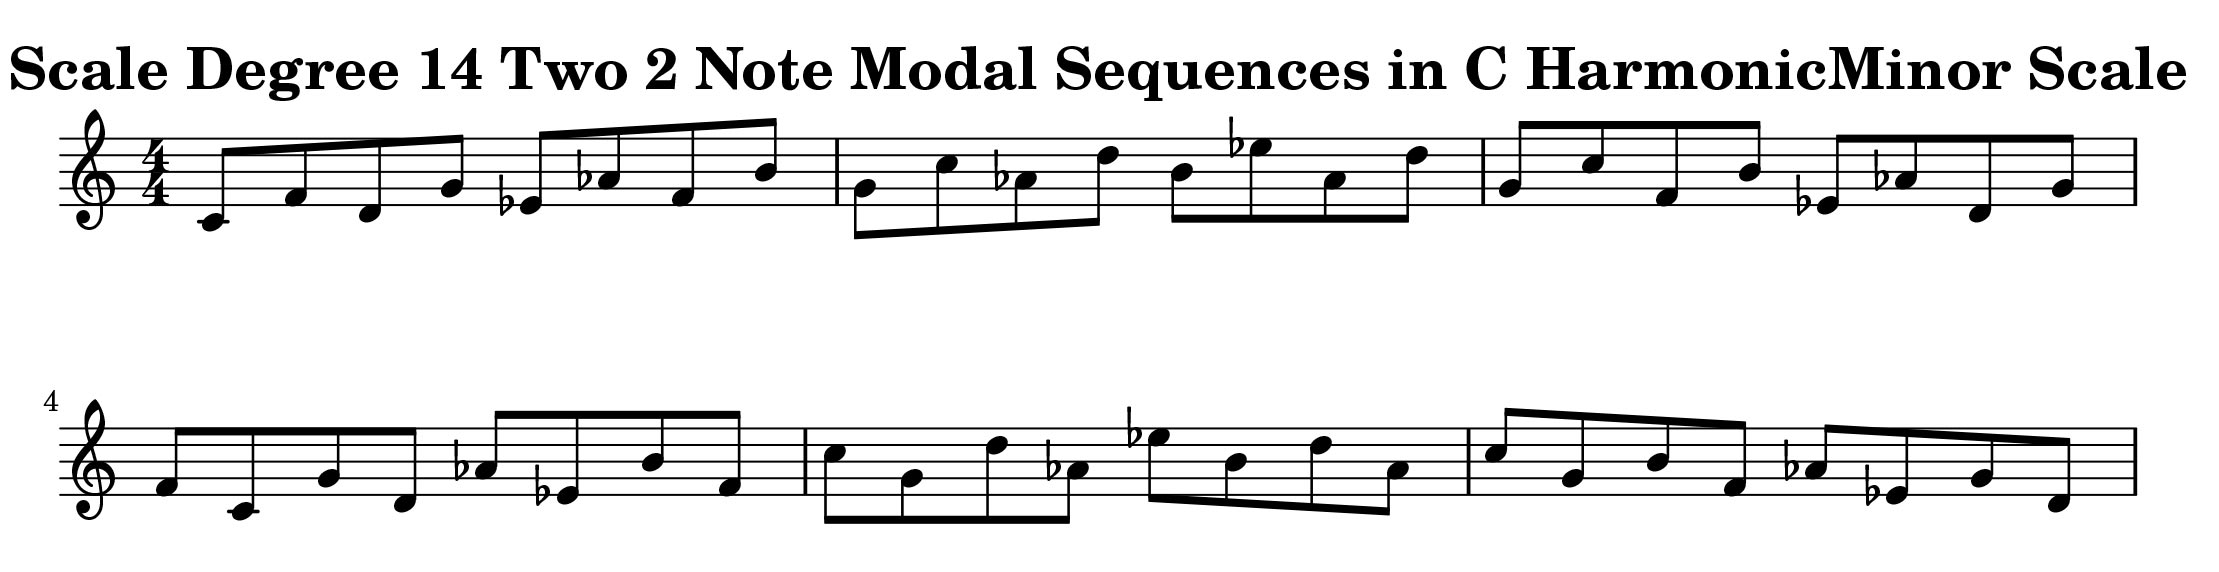 C Harmonic Minor Scale Modal Sequencing 2 Note Group 3 for all instrumentalist by Bruce Arnold for Muse Eek Publishing Company